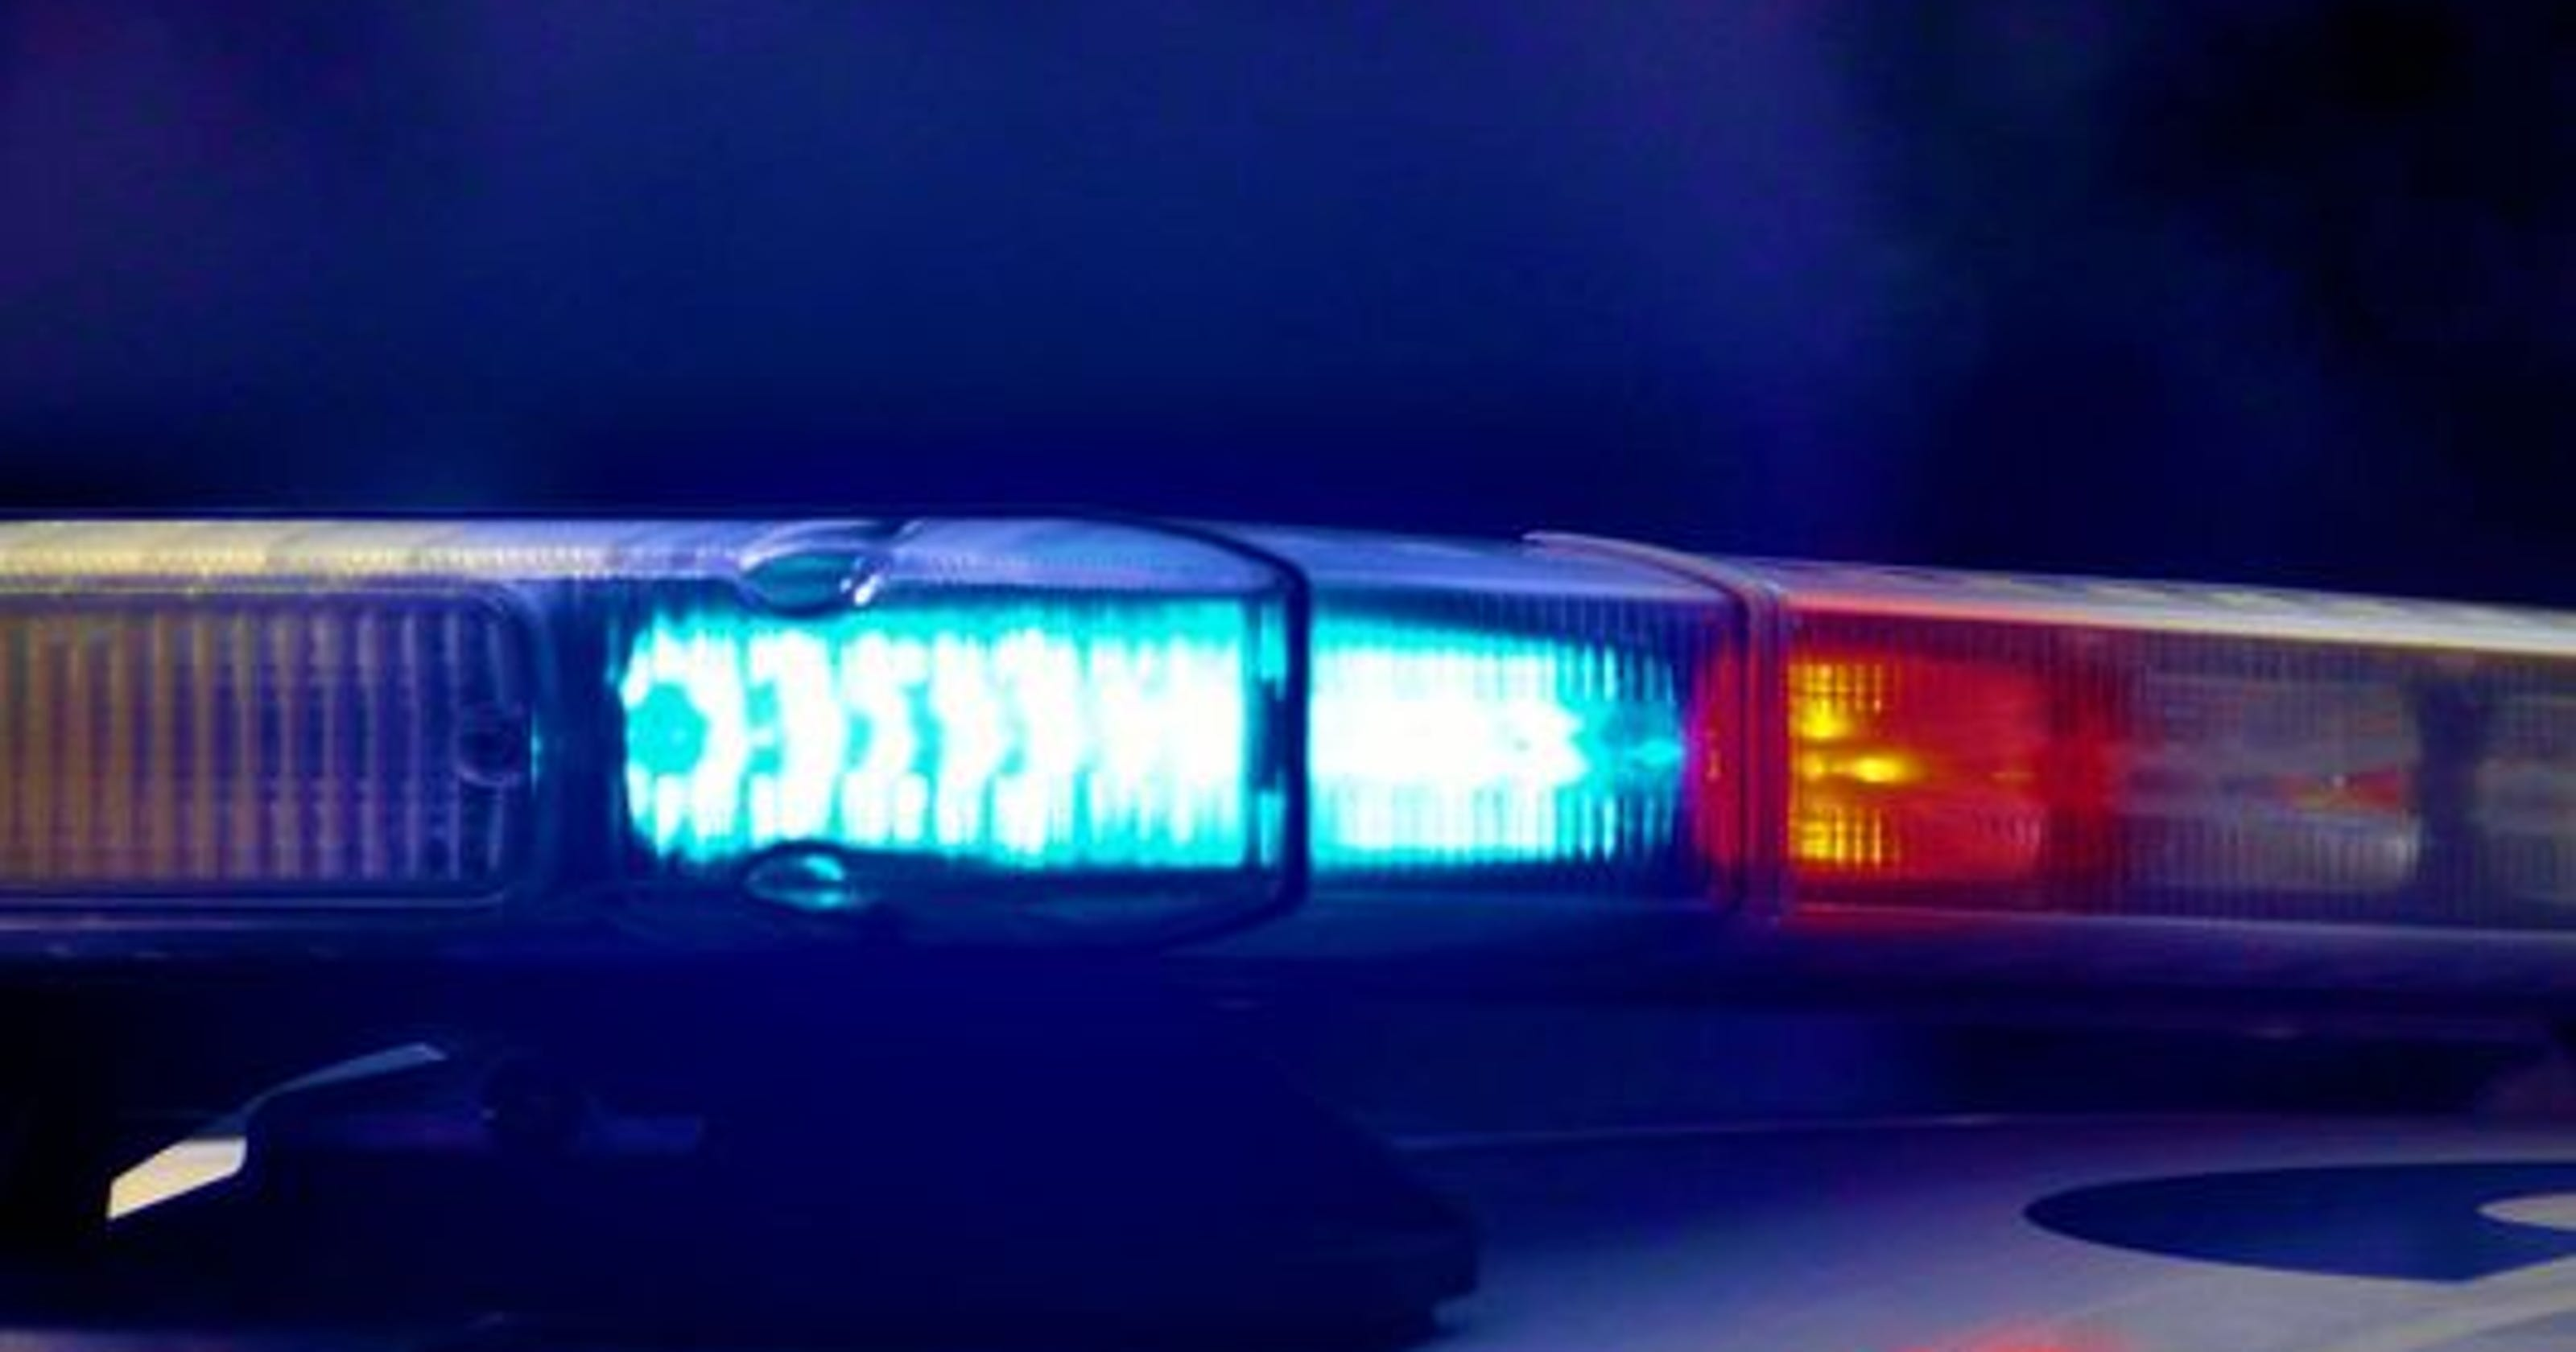 Coroner identifies motorcyclist killed in early morning crash in